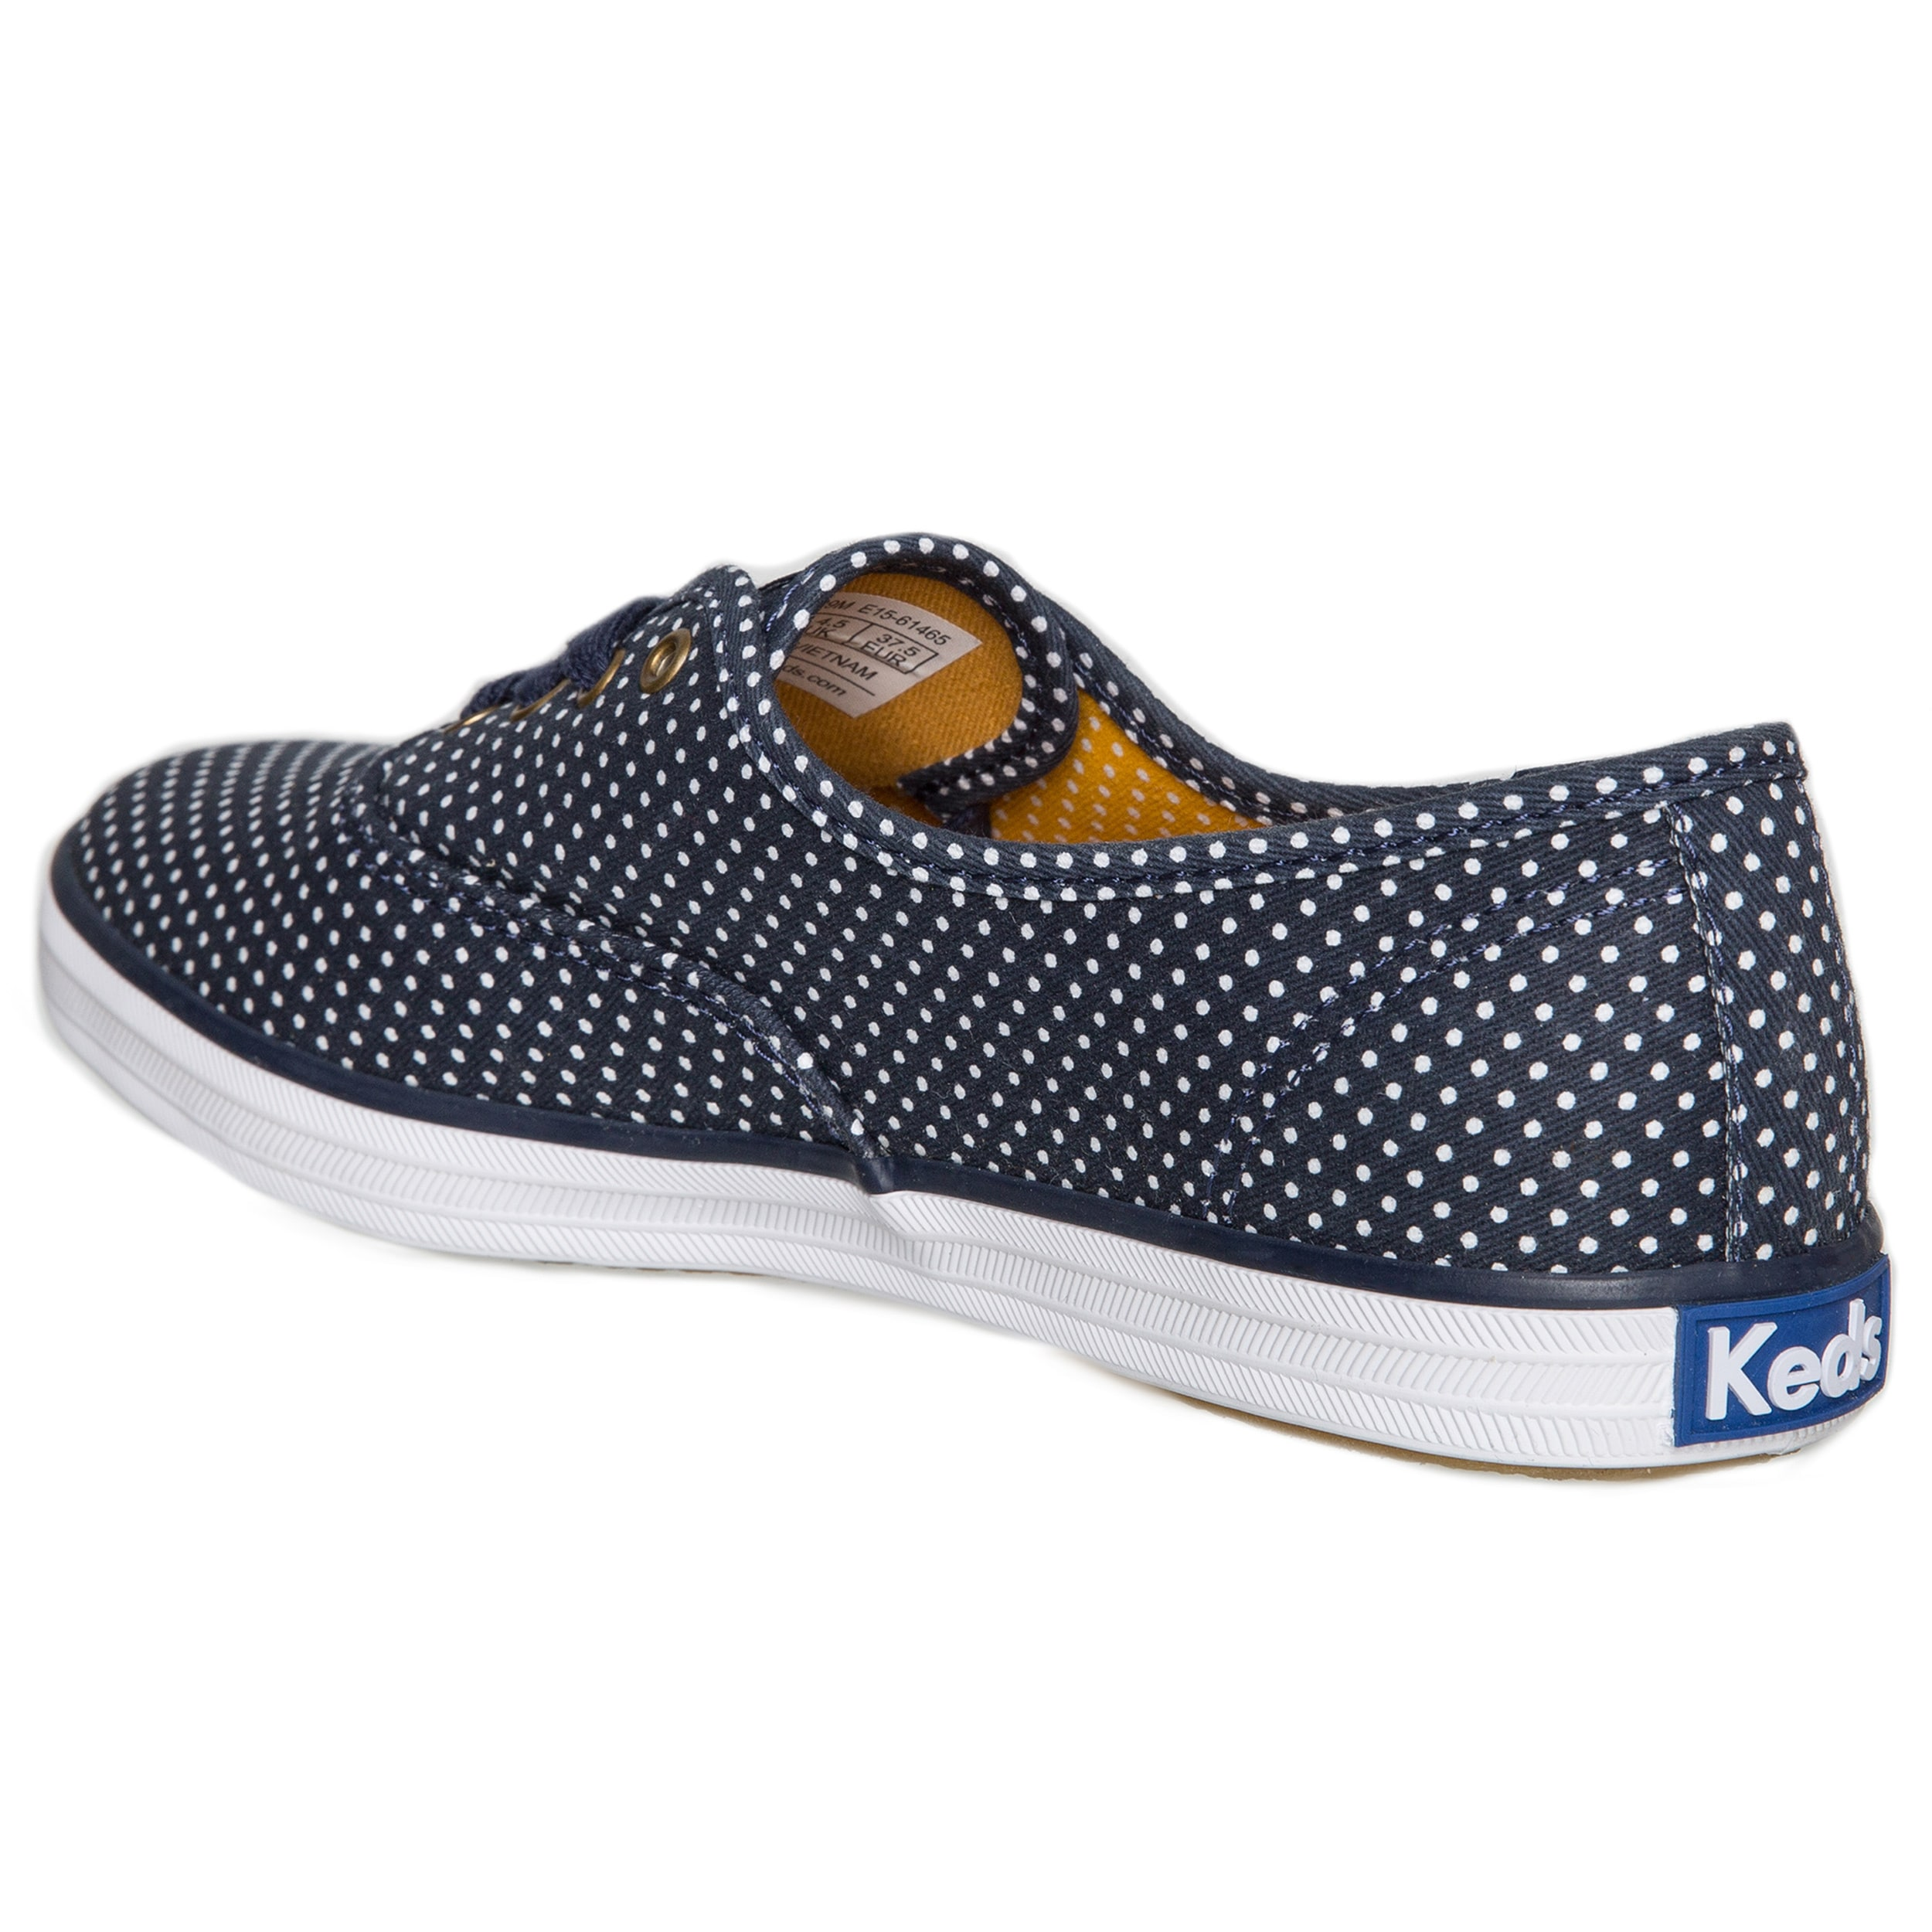 577785c4d75 Shop Keds Women s Champion Navy Micro Dot Sneakers - Free Shipping On  Orders Over  45 - Overstock - 11416476